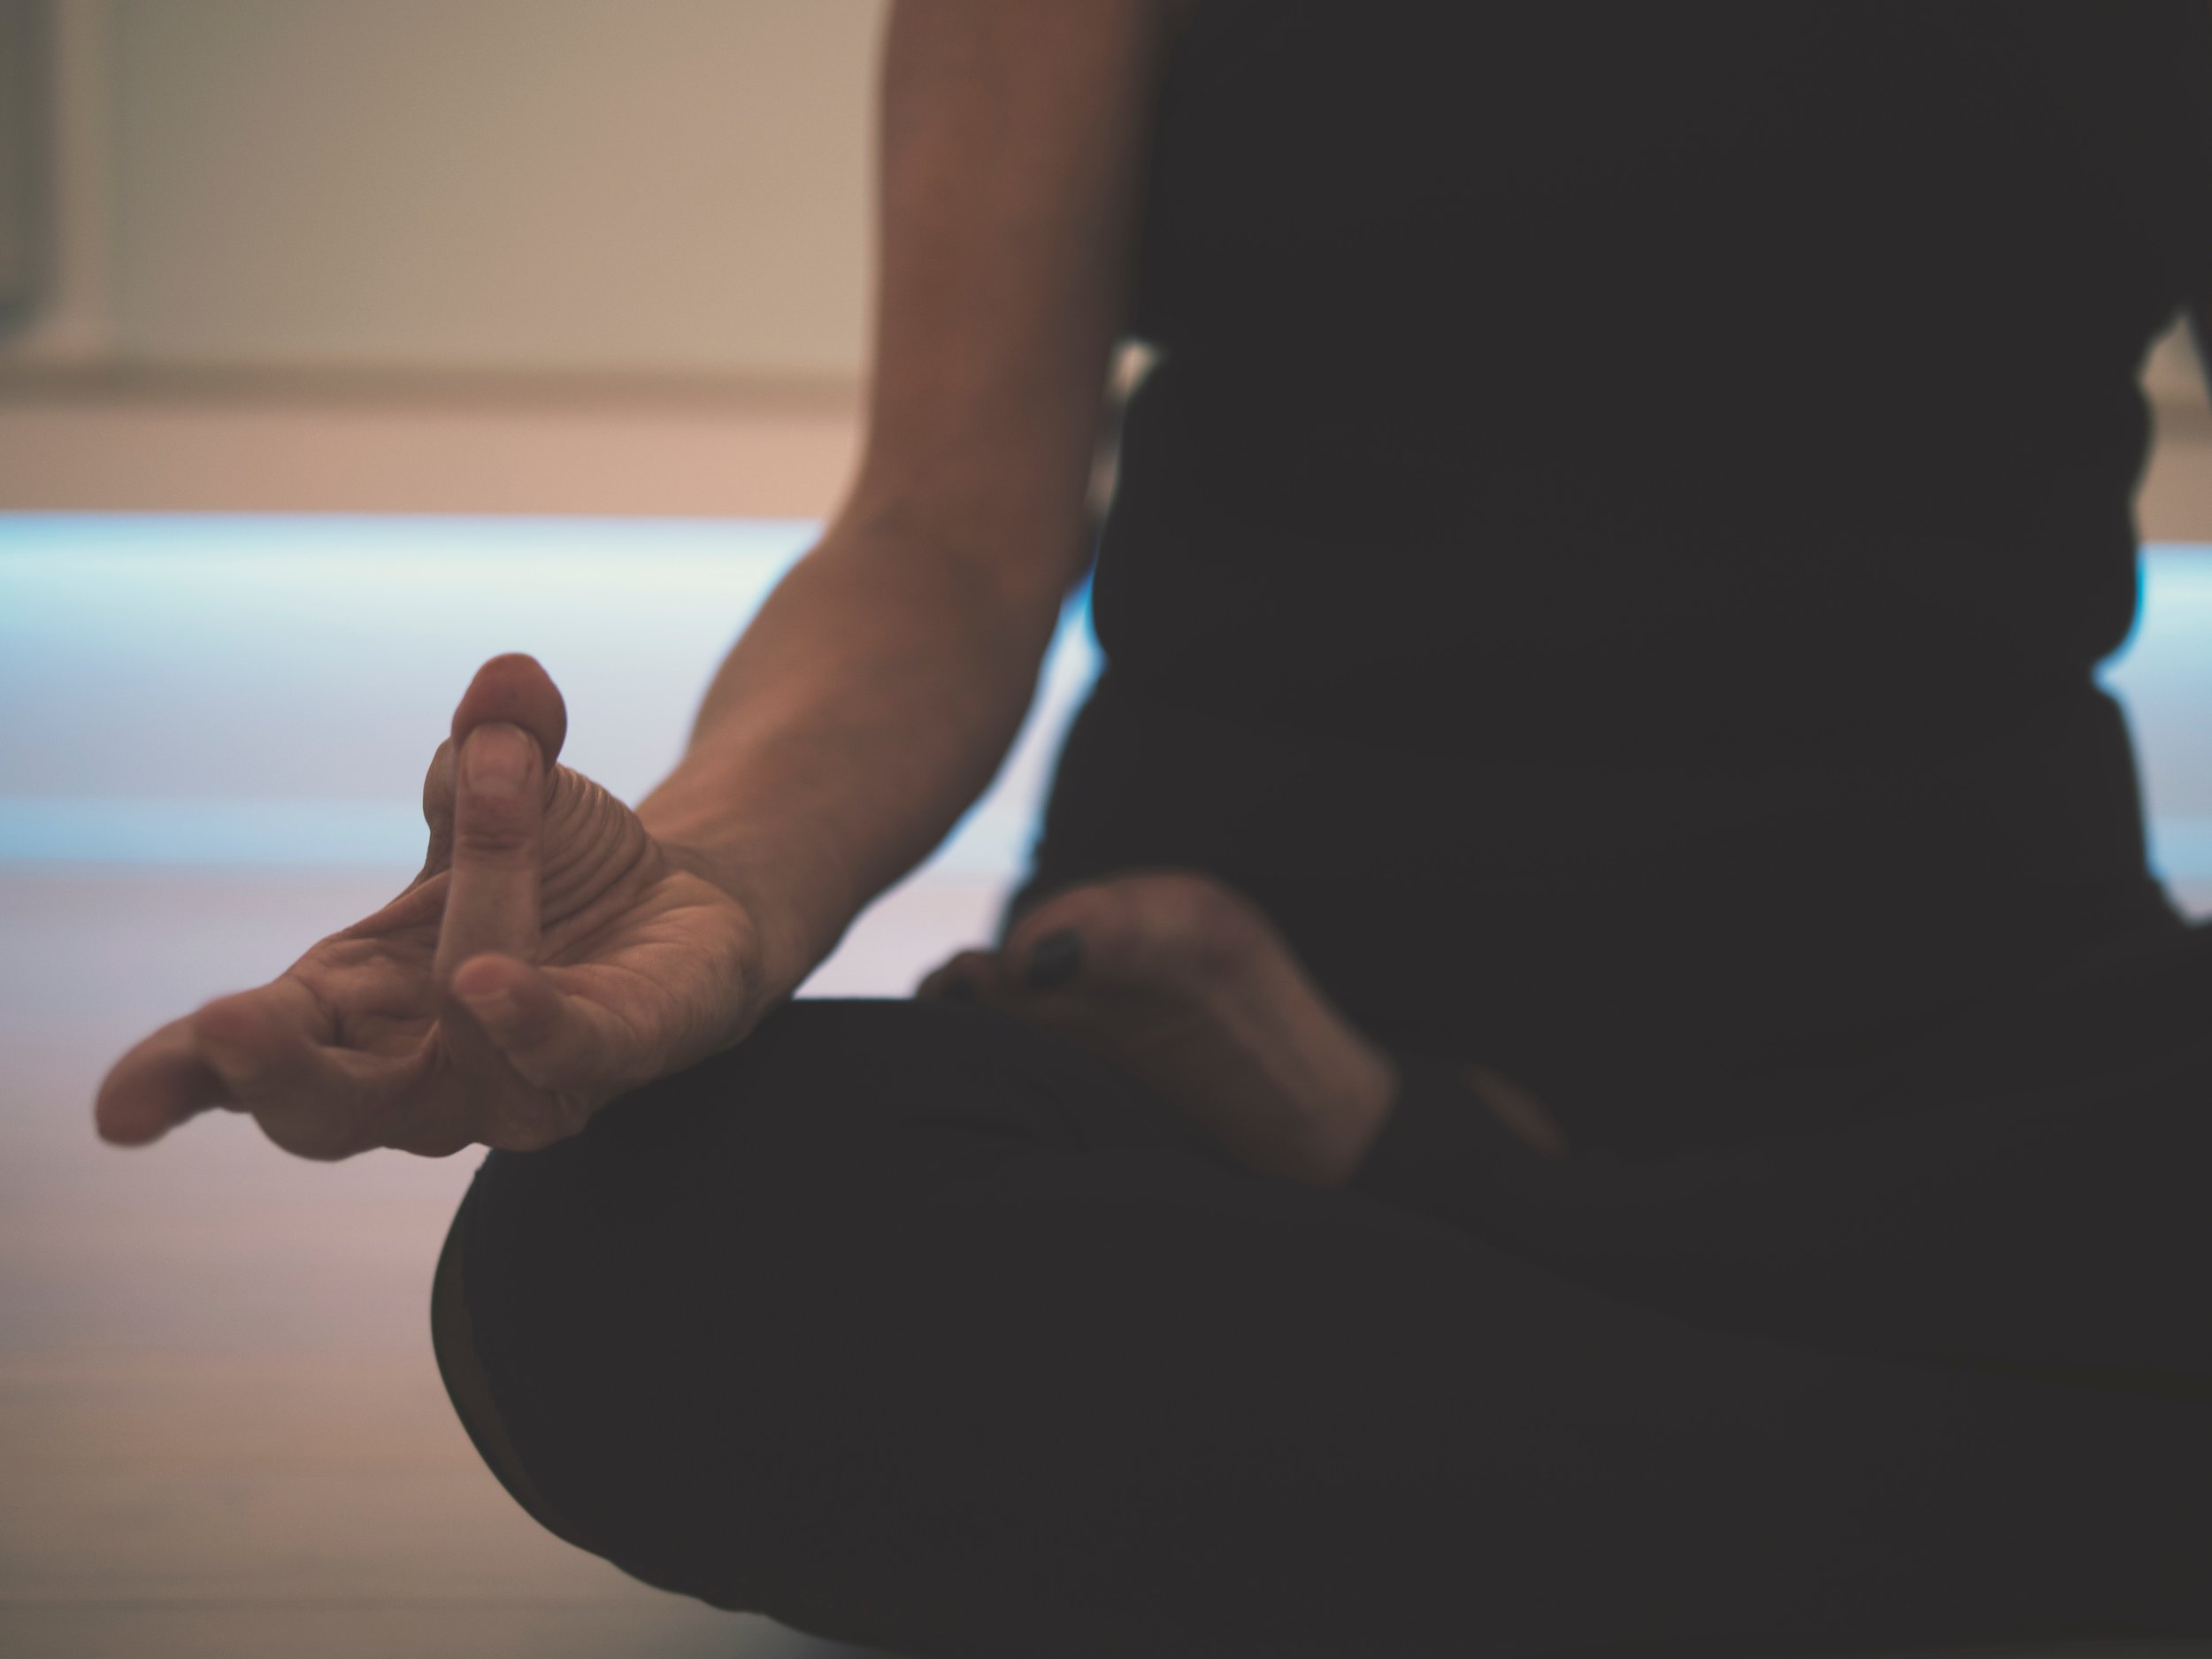 Yoga for Axiety, Stress & Trauma Workshops - Mental health is as important as physical health, and we have workshops that address both. Visit our facebook page to see the most up-to-date workshop dates and to register online.